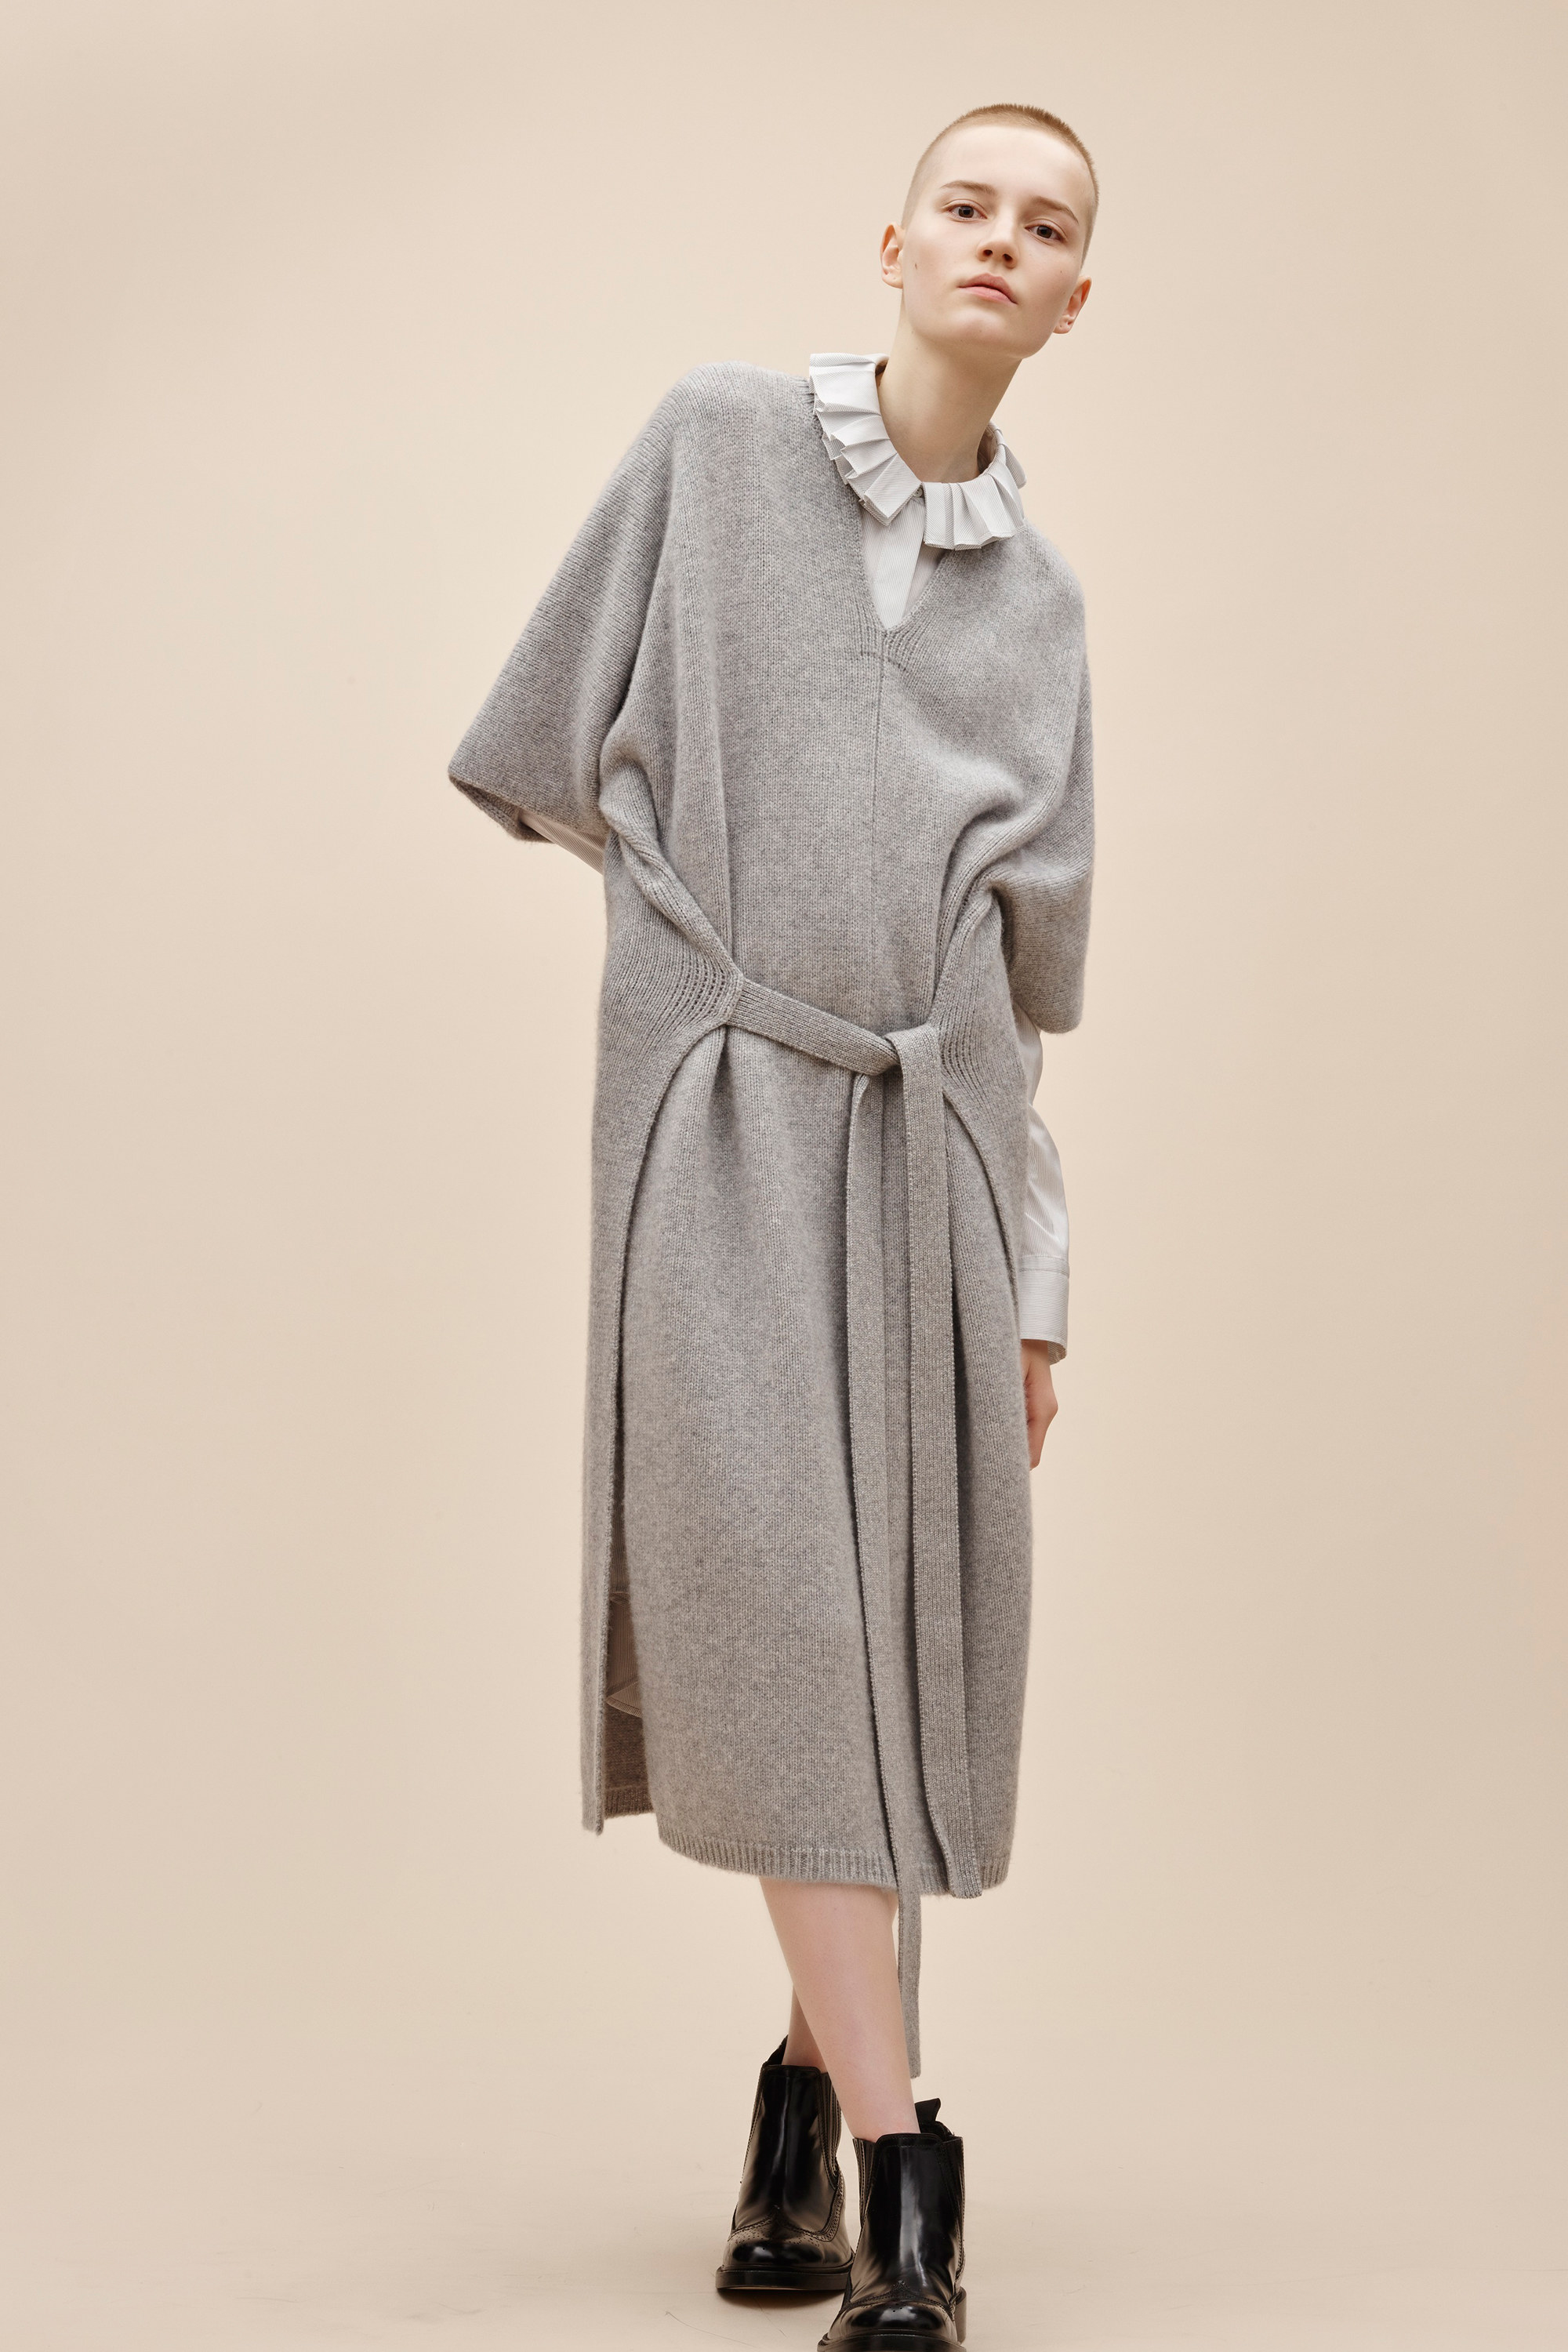 joseph-pre-fall-2016-lookbook-16